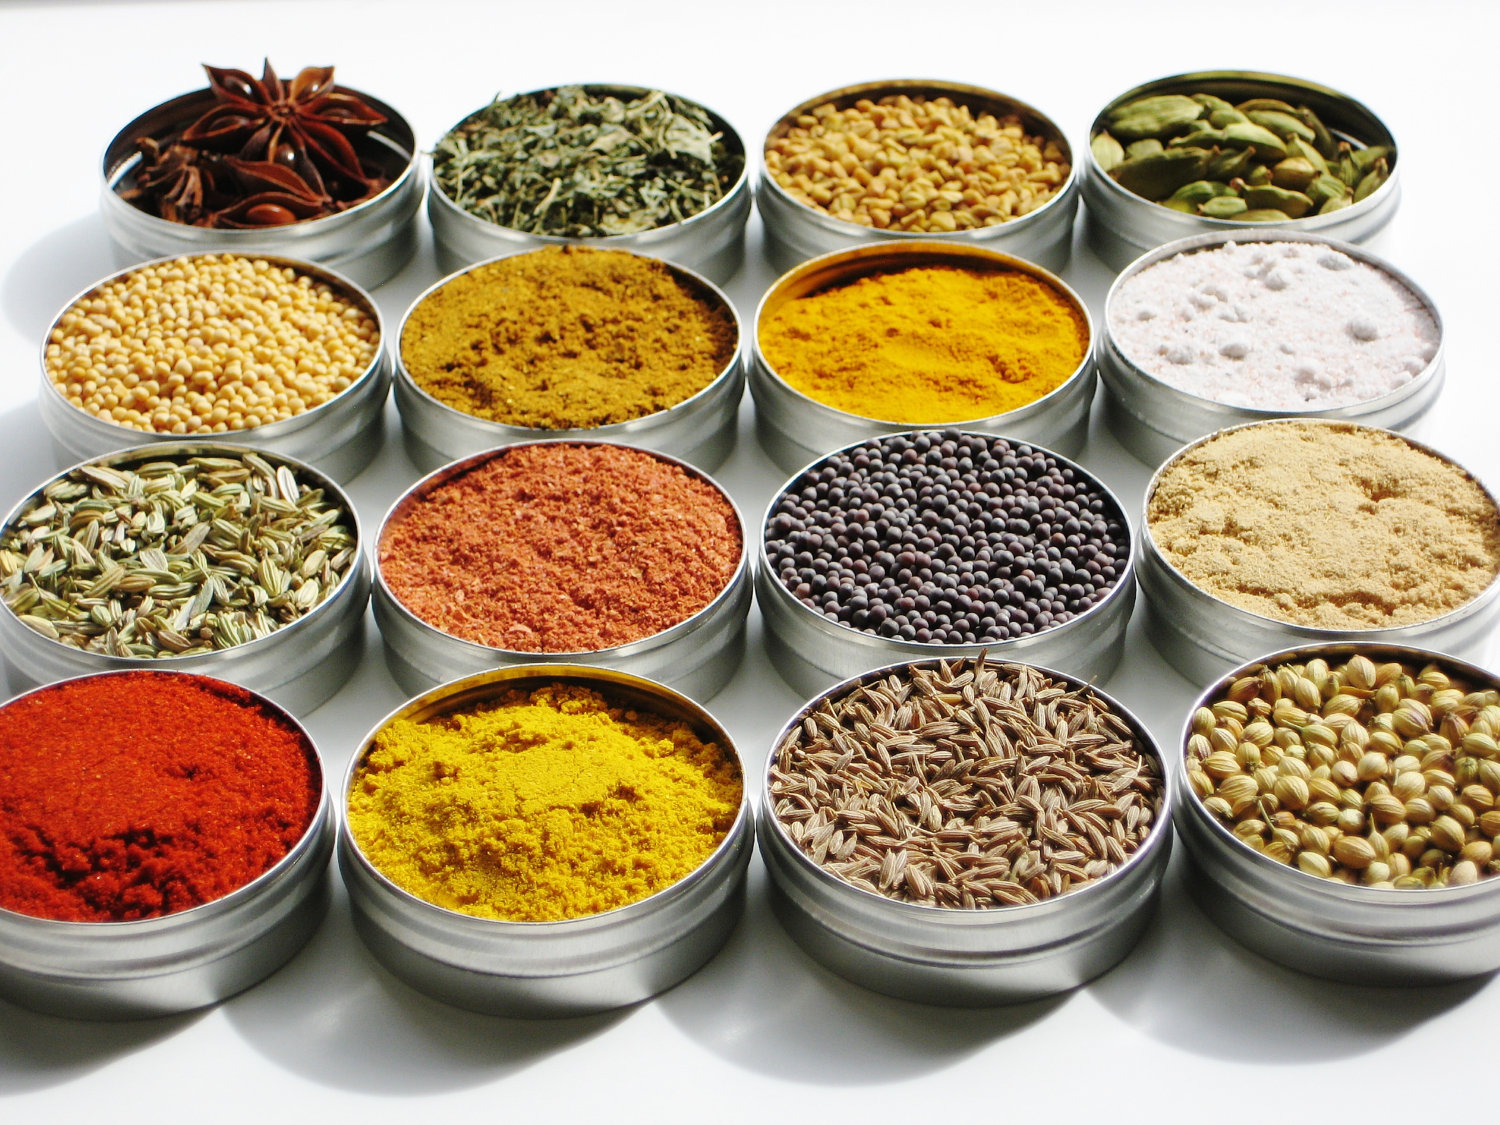 Spices clipart indian spice In Spice this Like As